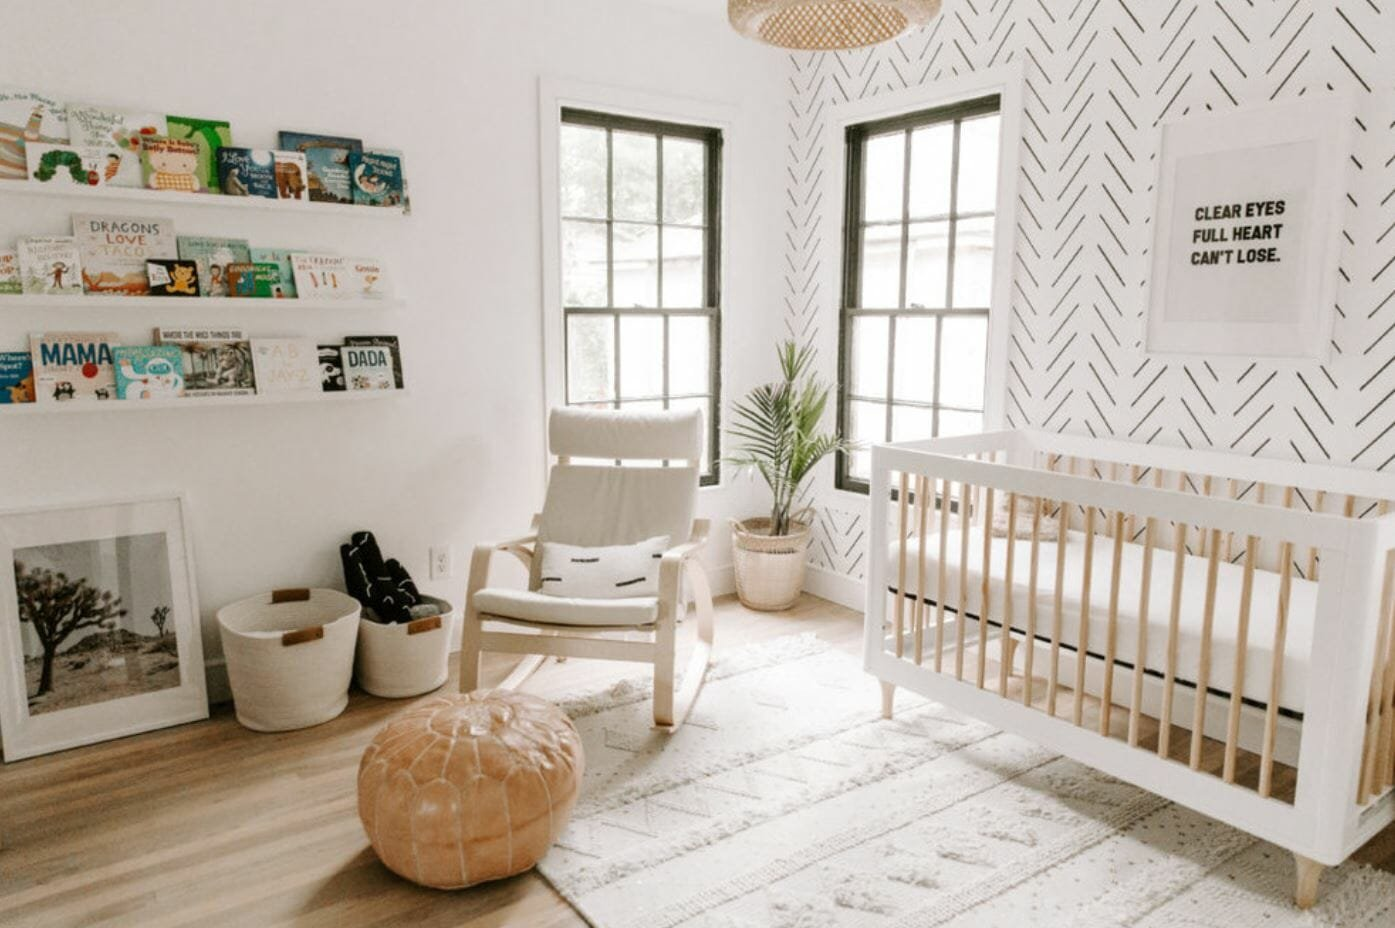 Nursery Interior Design Essential Checklist For Your New Space